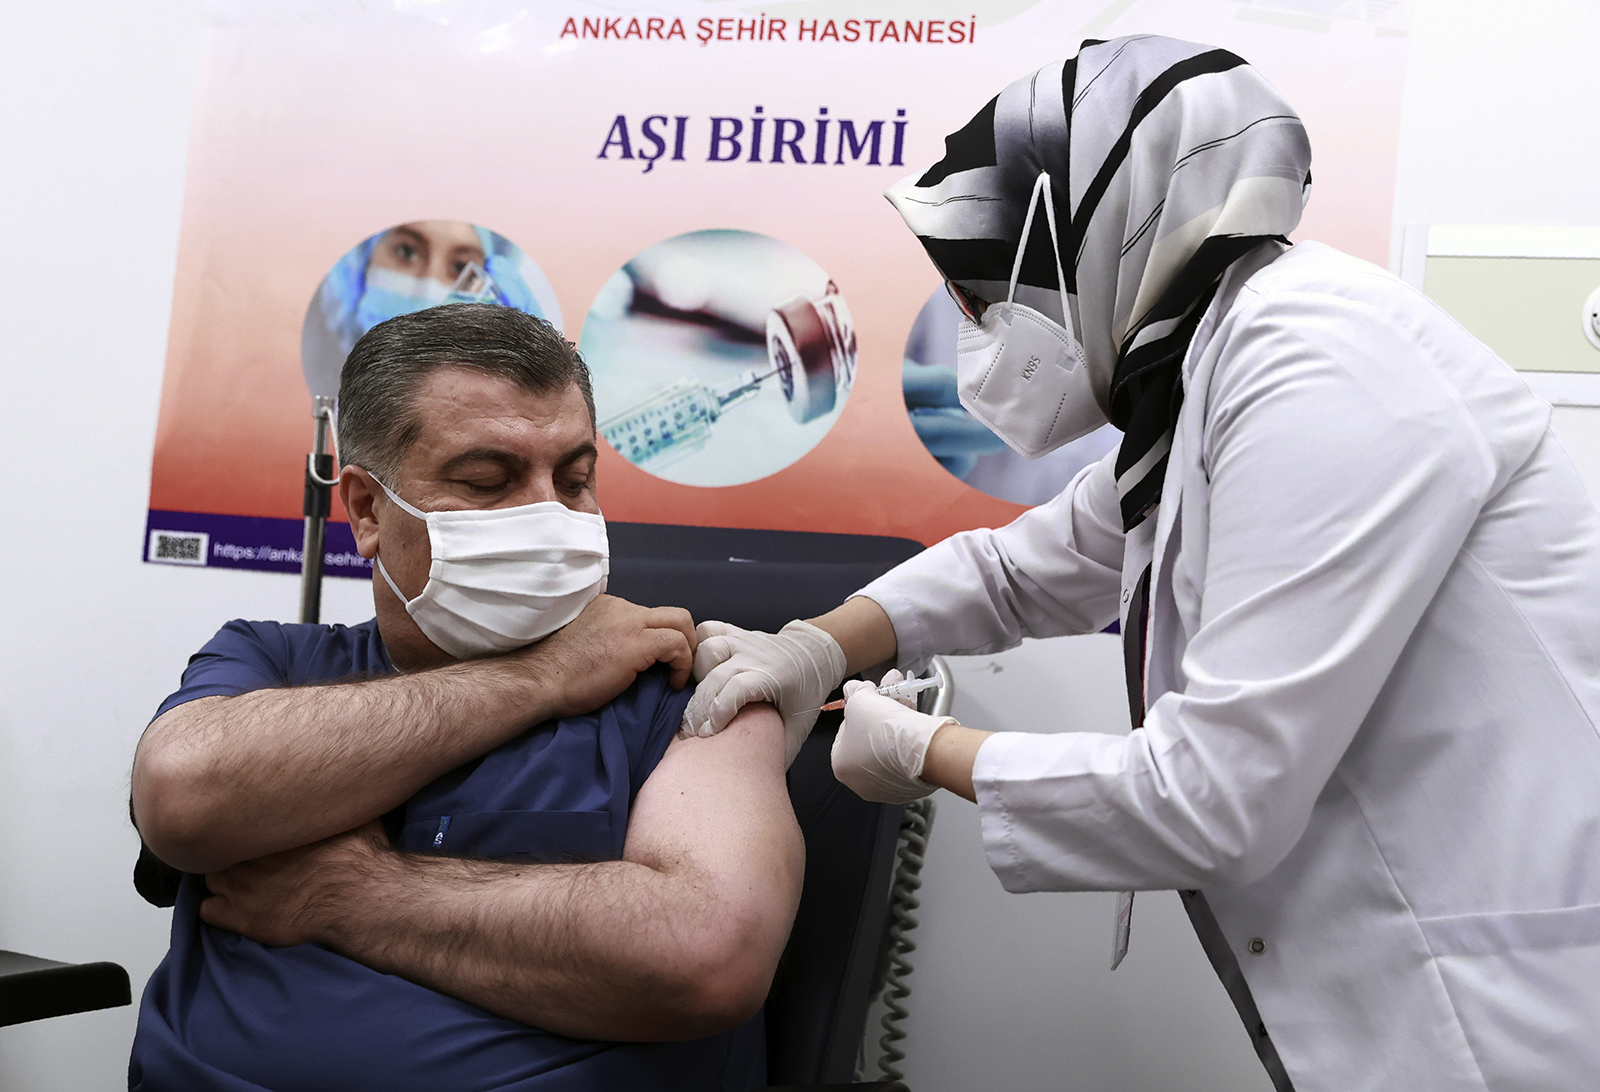 Turkey's Health Minister Fahrettin Koca receives the first shot after Turkish authorities gave the go-ahead for the emergency use of the Covid-19 vaccine produced by China's Sinovac Biotech, in Ankara, Turkey, on Wednesday, January 13.